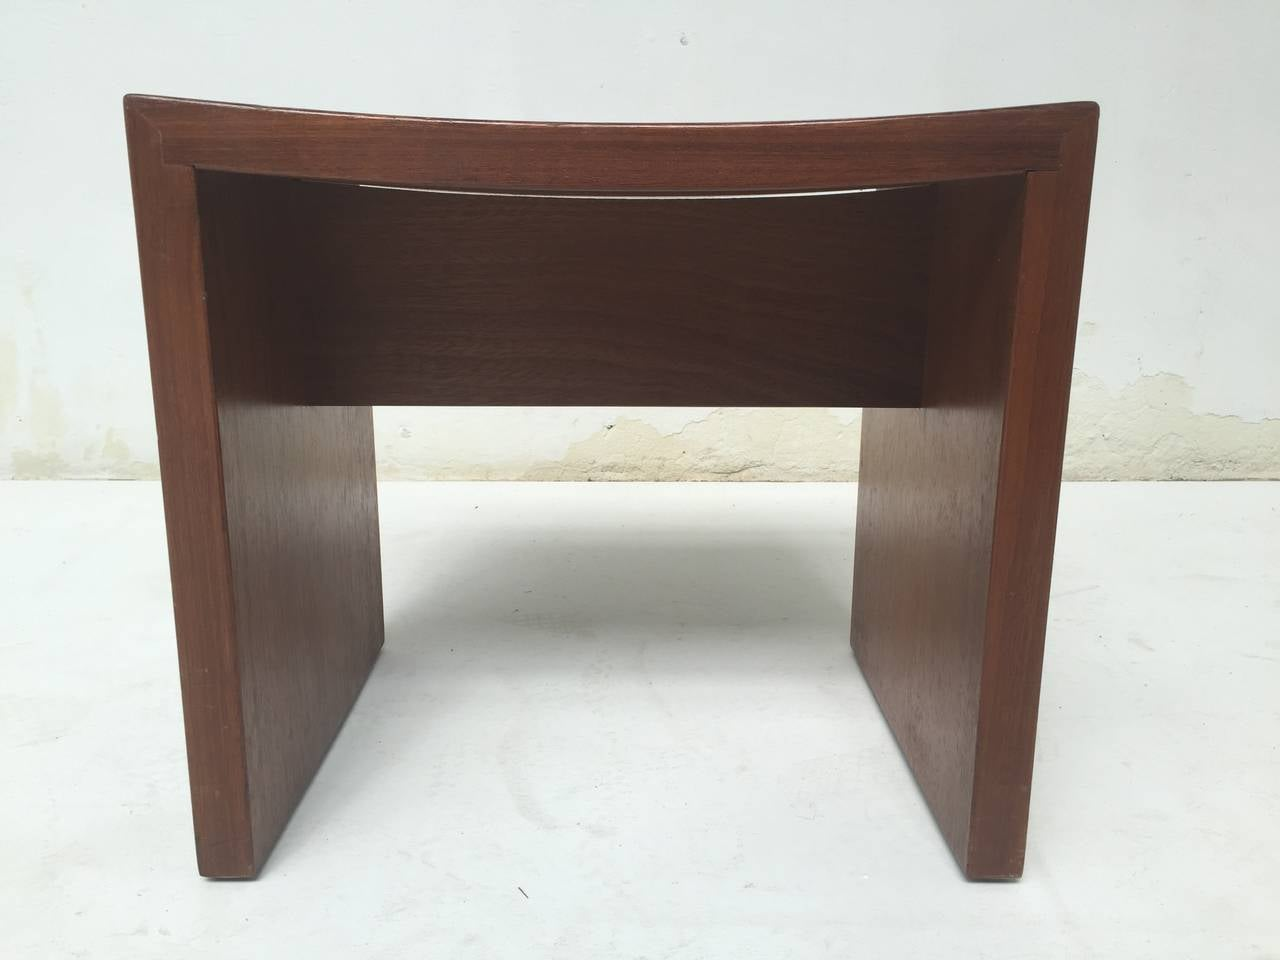 Unique Set of Solid Mahogany Church Seats by Dutch Architect Harry Nefkens, 1963 For Sale 1